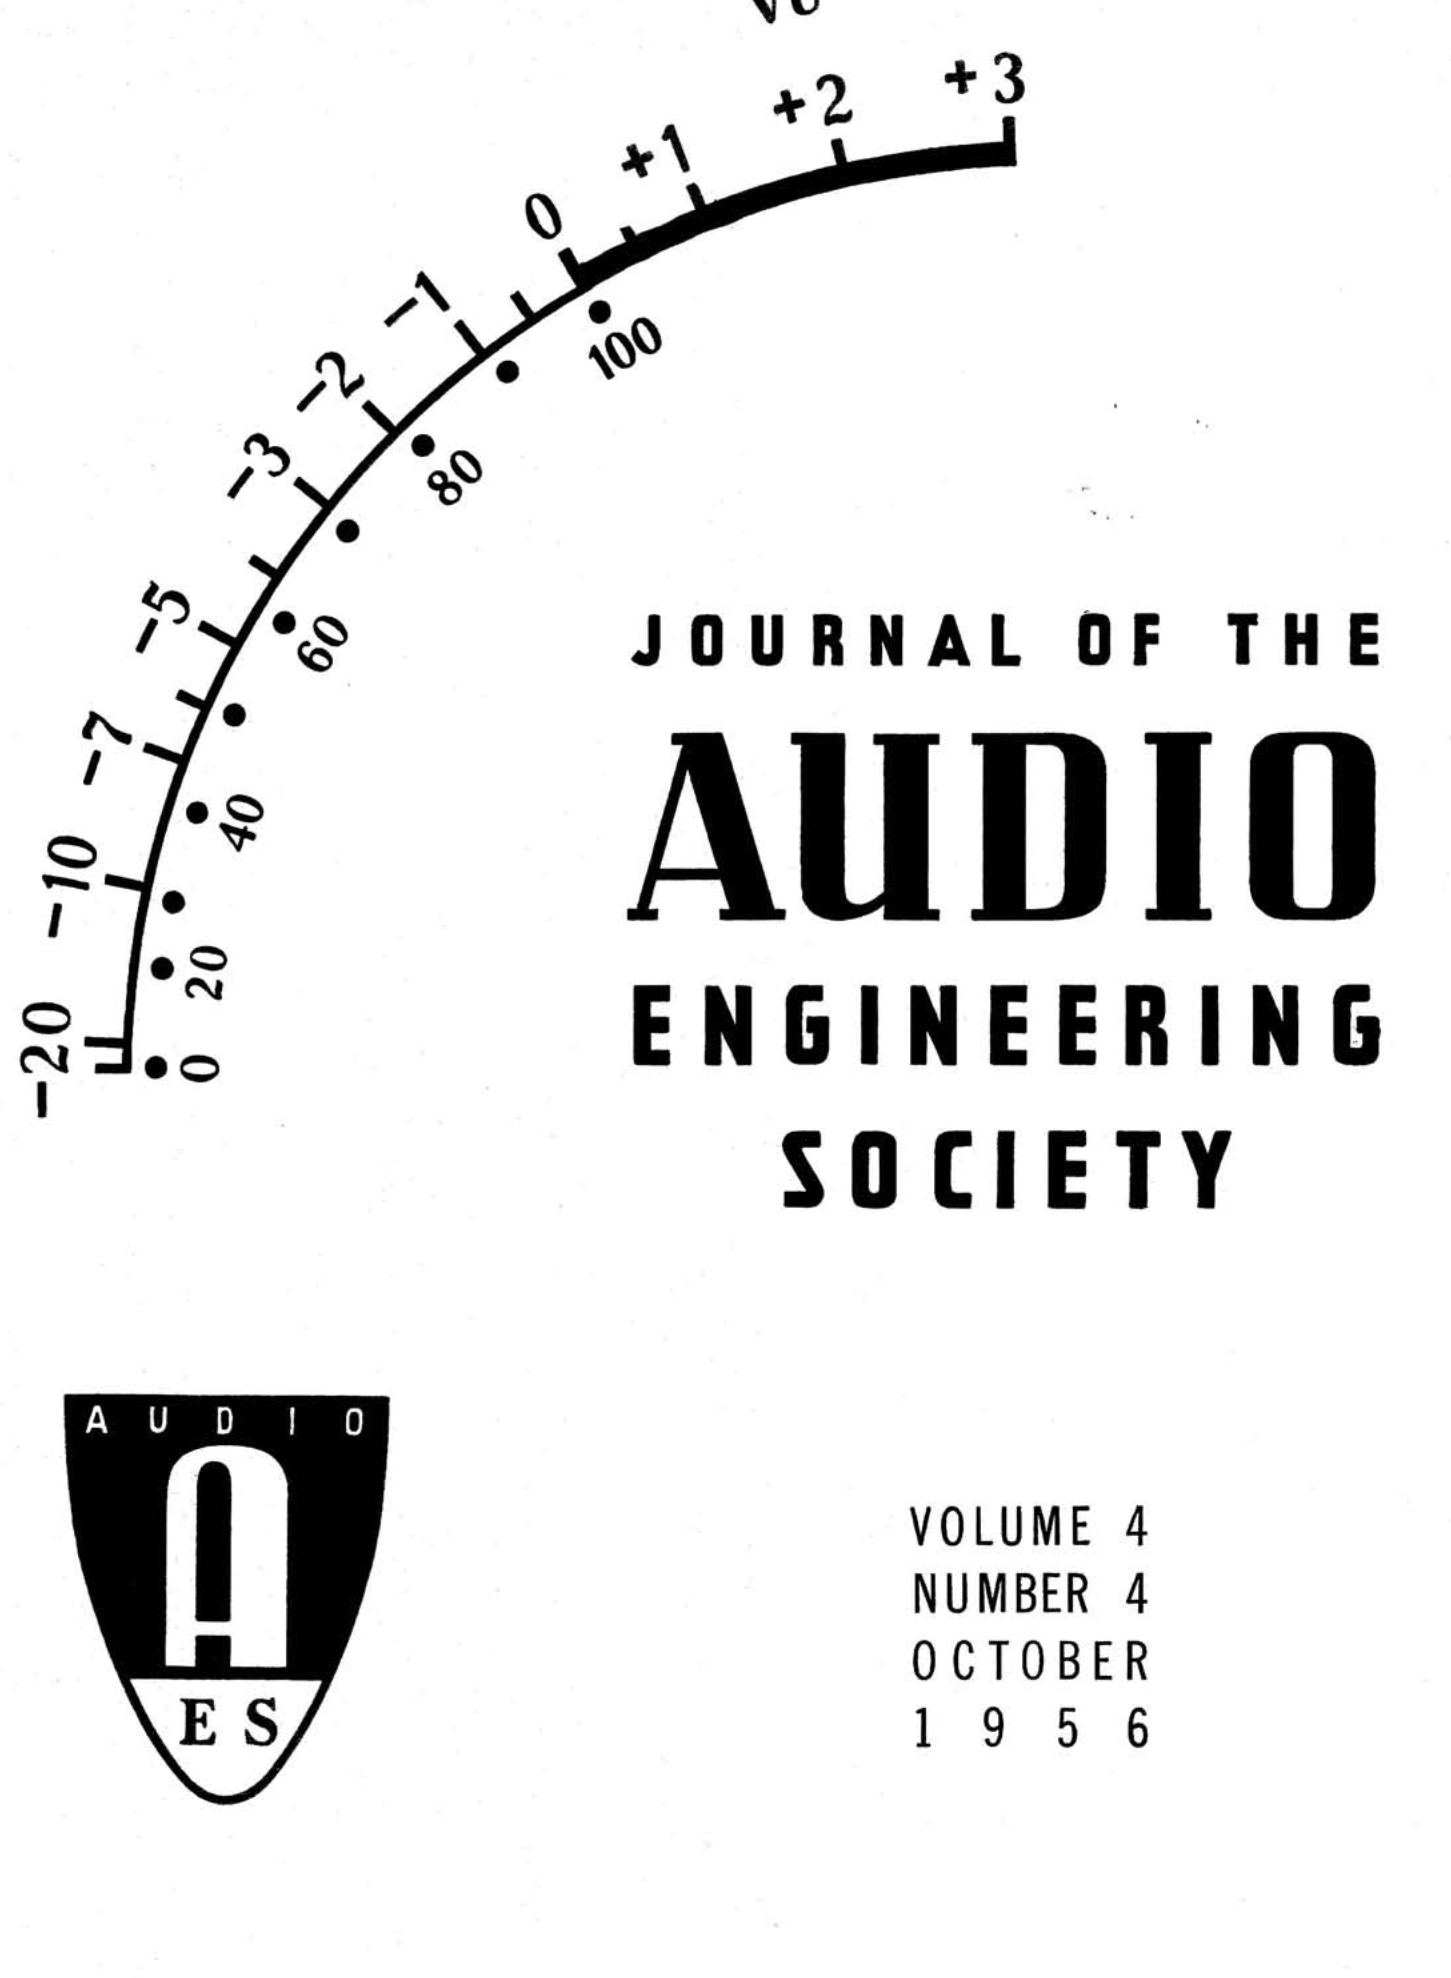 Aes E Library Complete Journal Volume 4 Issue Connected To The Potentiometric Circuit As A Null Detector Switch